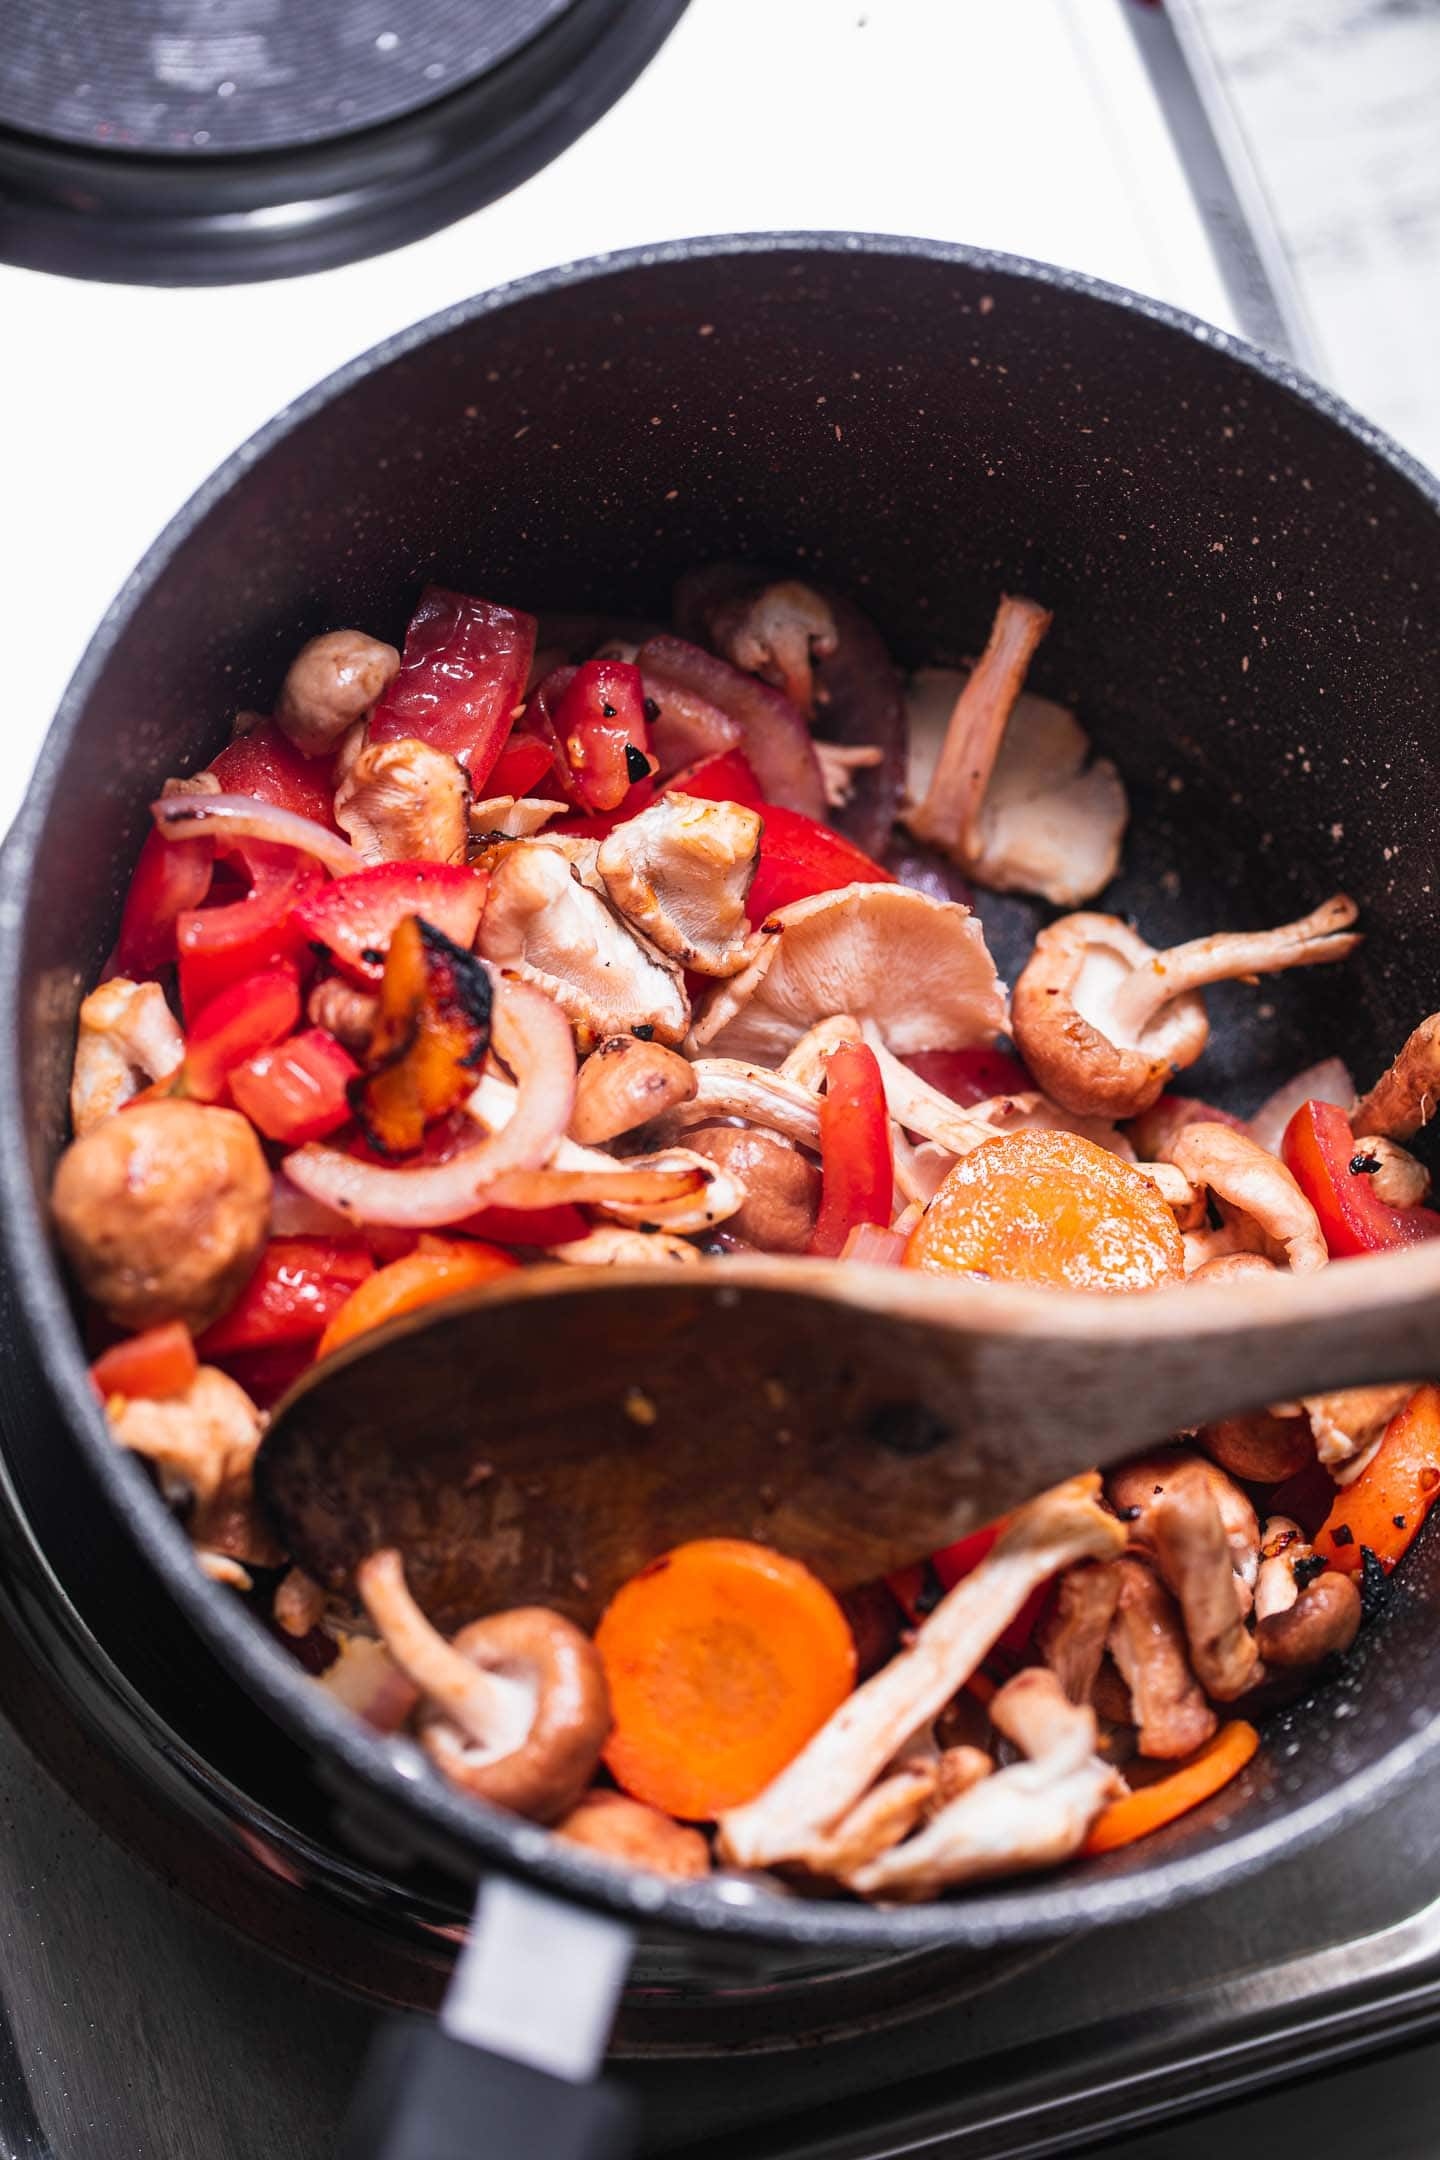 Vegetables in a saucepan